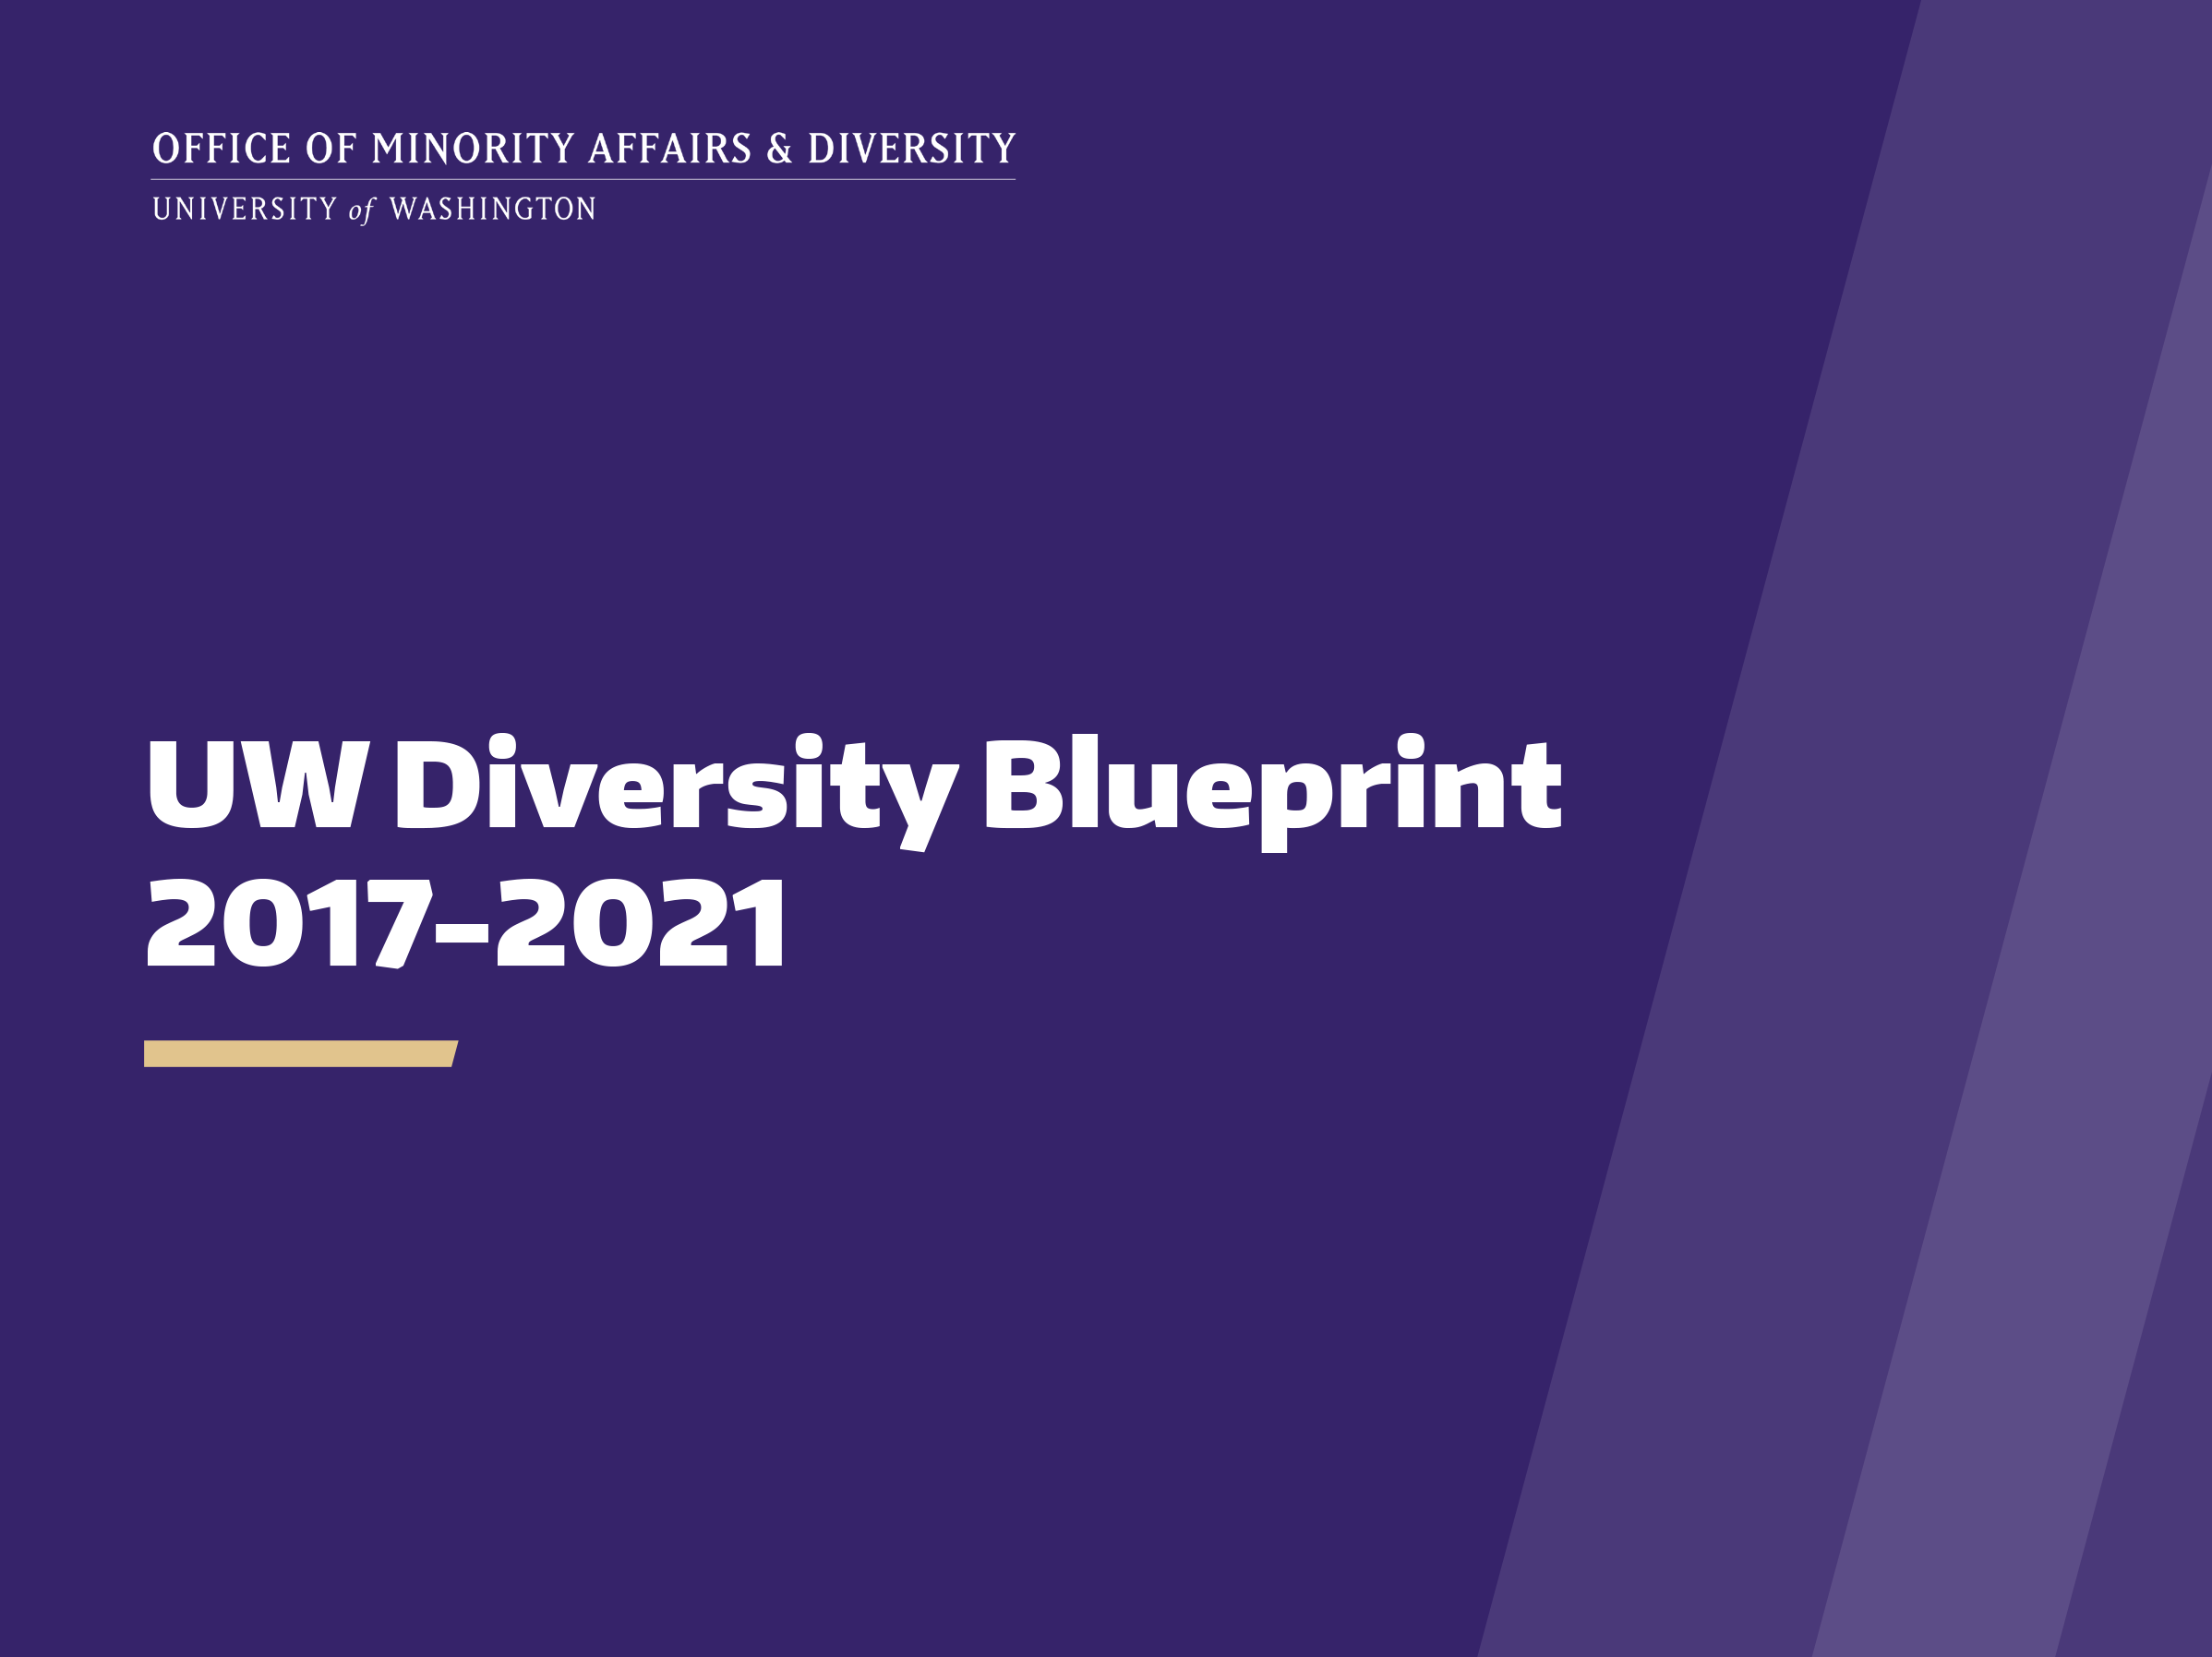 Diversity blueprint diversity at the uw blueprint links malvernweather Choice Image